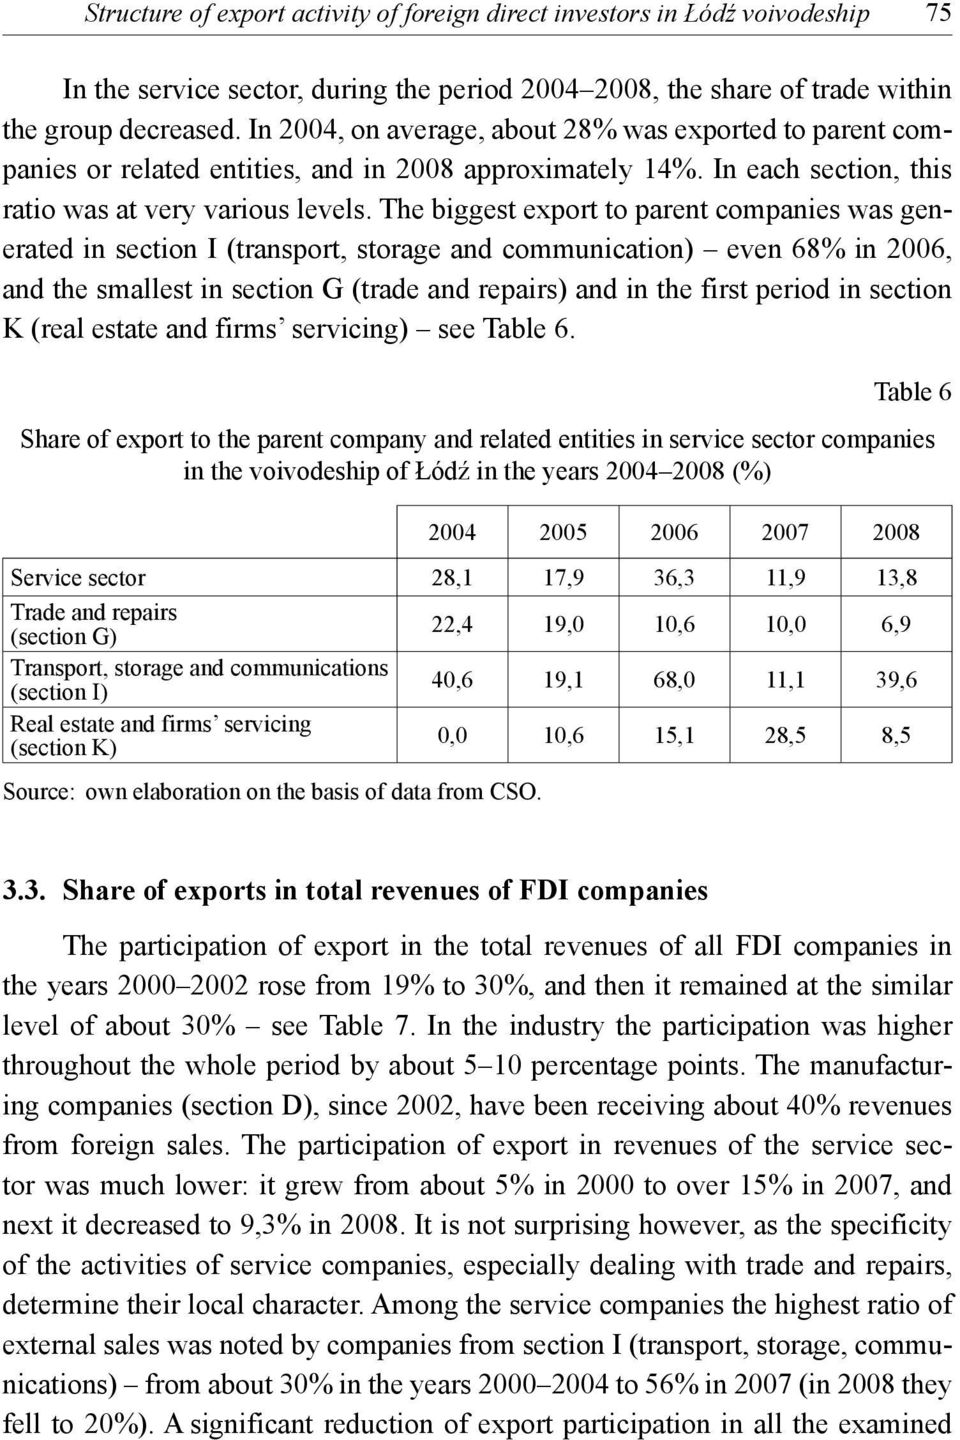 The biggest export to parent companies was generated in section I (transport, storage and communication) even 68% in 2006, and the smallest in section G (trade and repairs) and in the first period in